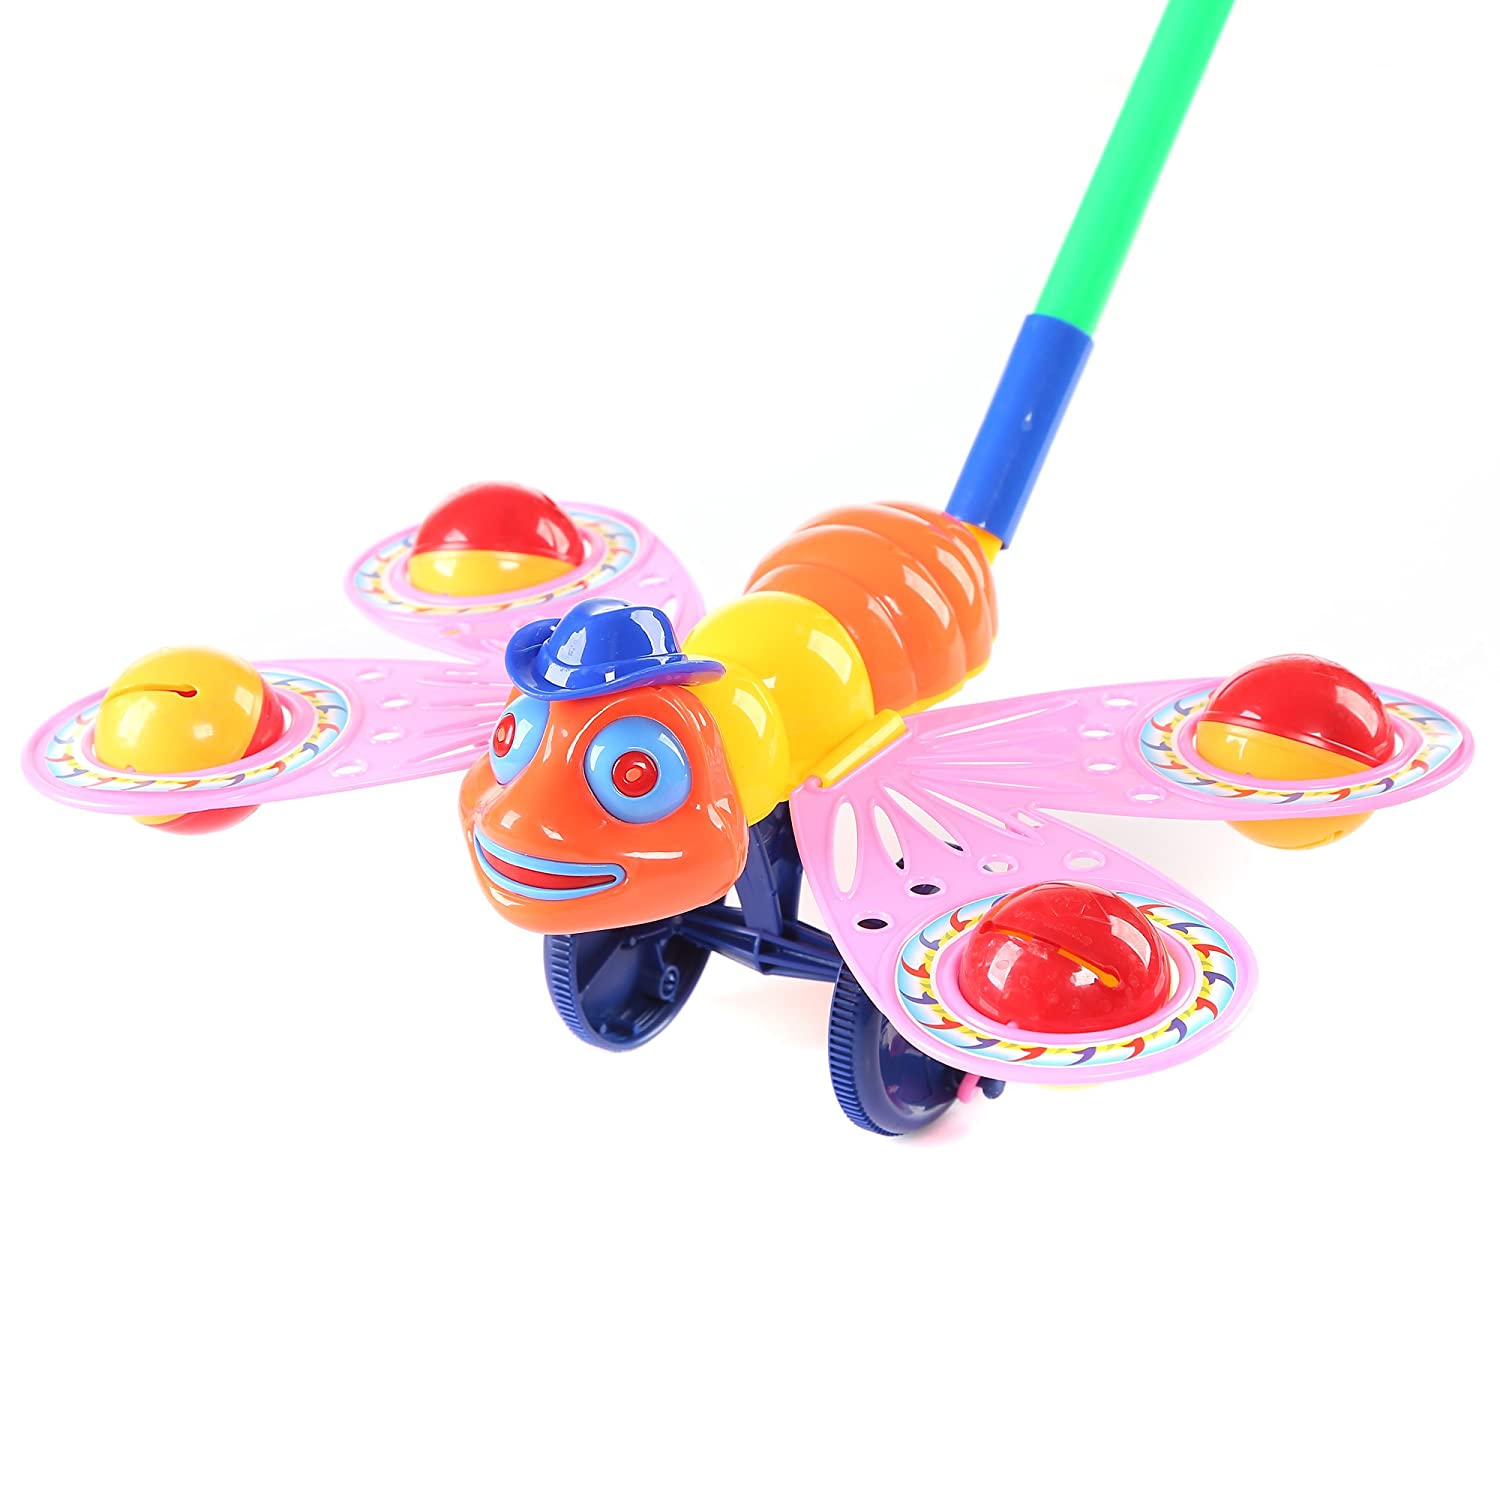 Fun Central BC761 1 Pc 10.5 Inches Bee Push Toy Pushing Toy for Kids Outdoor Push Toys Classic Push and Pull Toys Push Around Toy for Baptism Birthday and Party Prizes